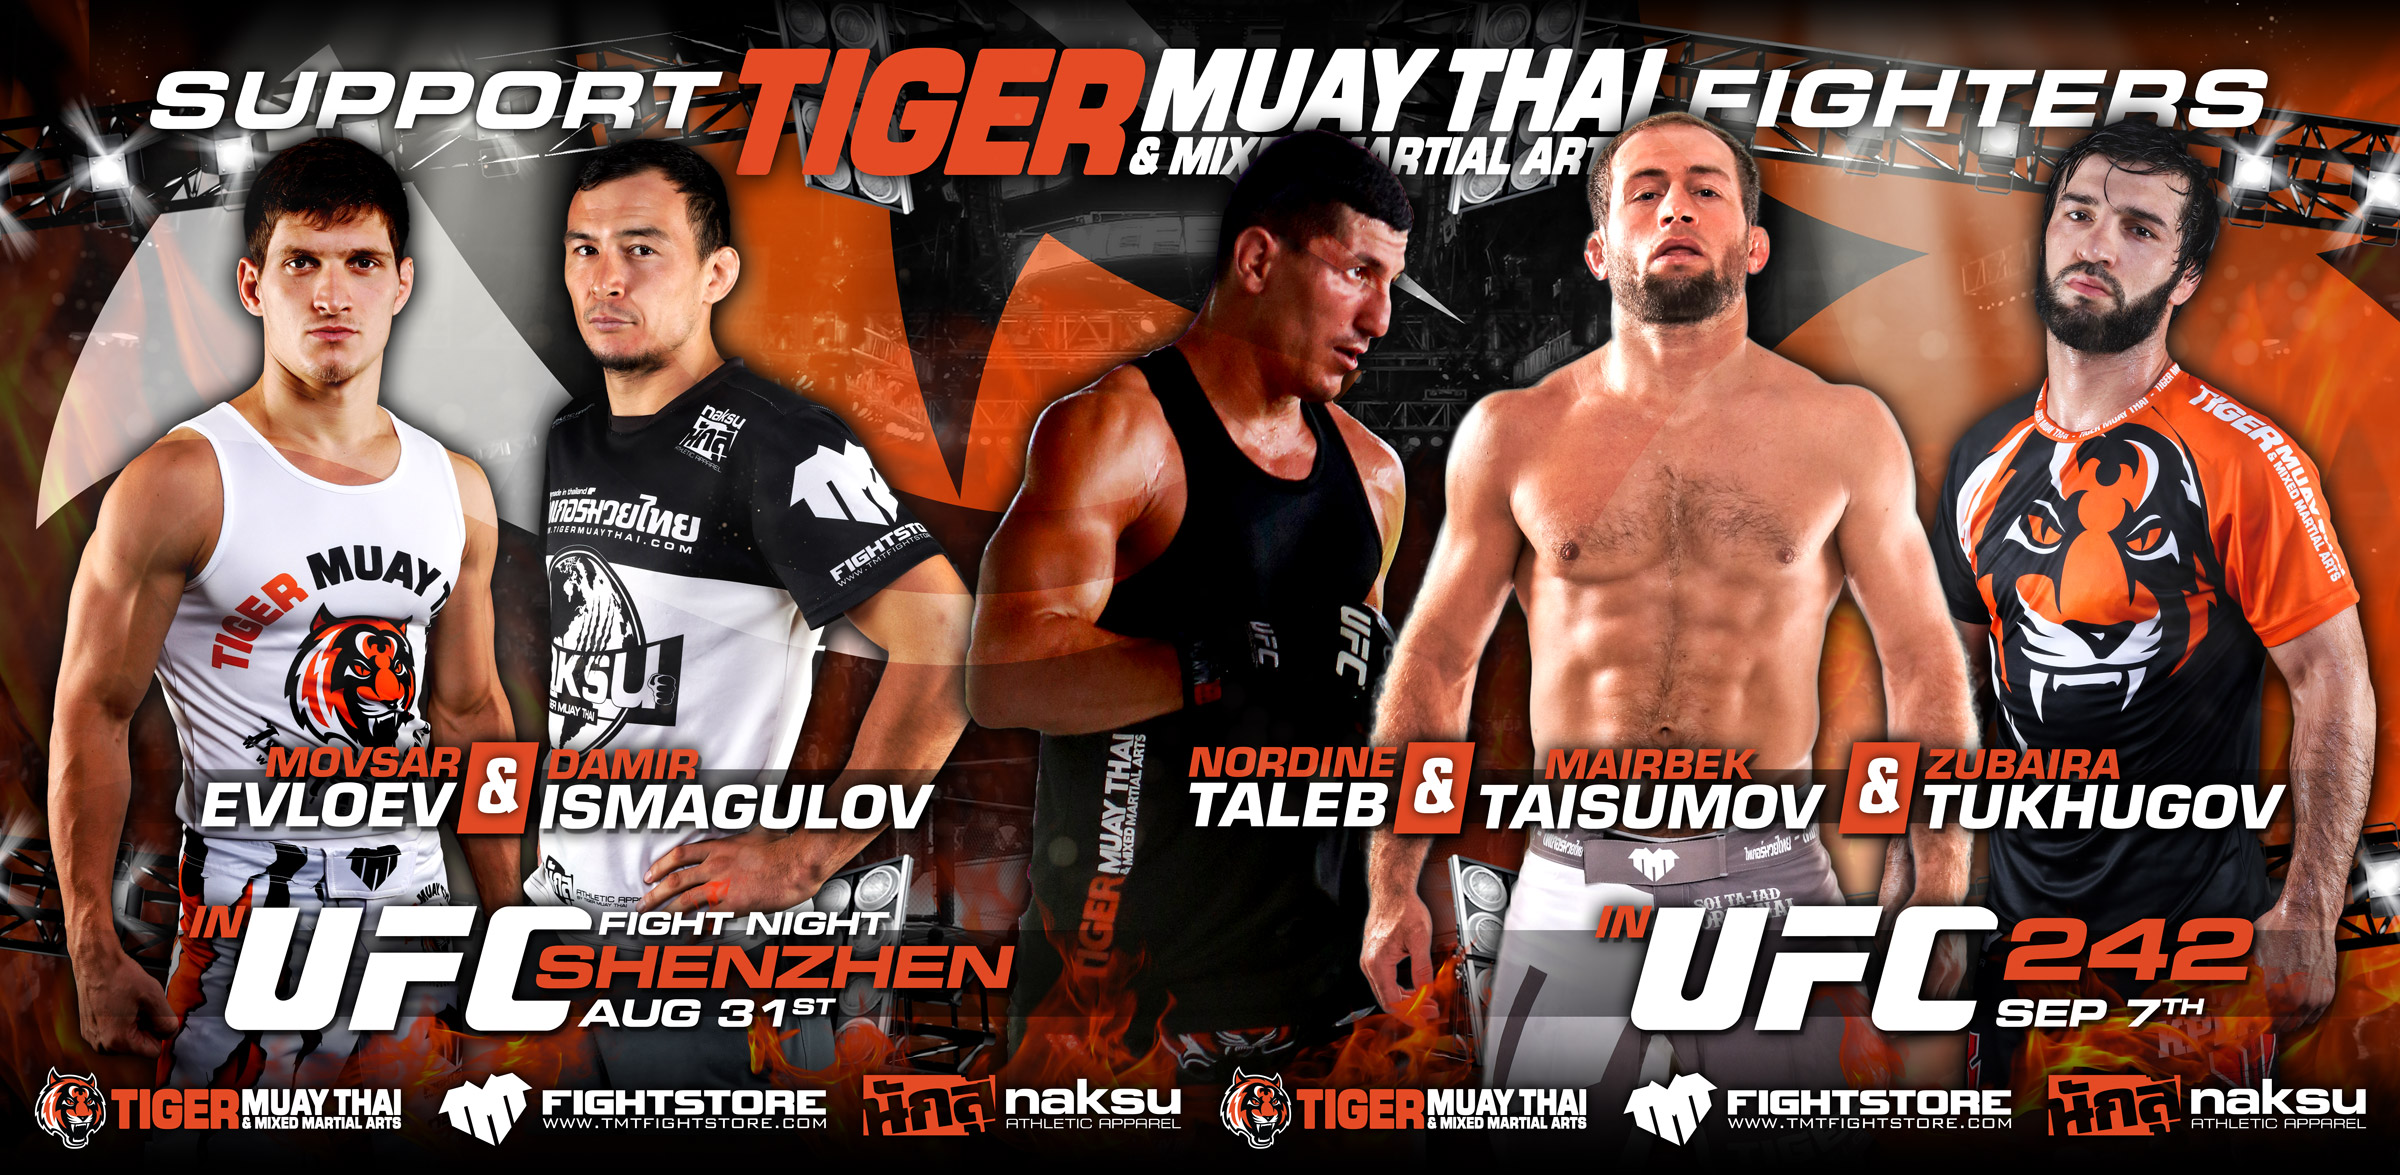 5 big UFC fights over 7 days coming up for the Tiger Muay